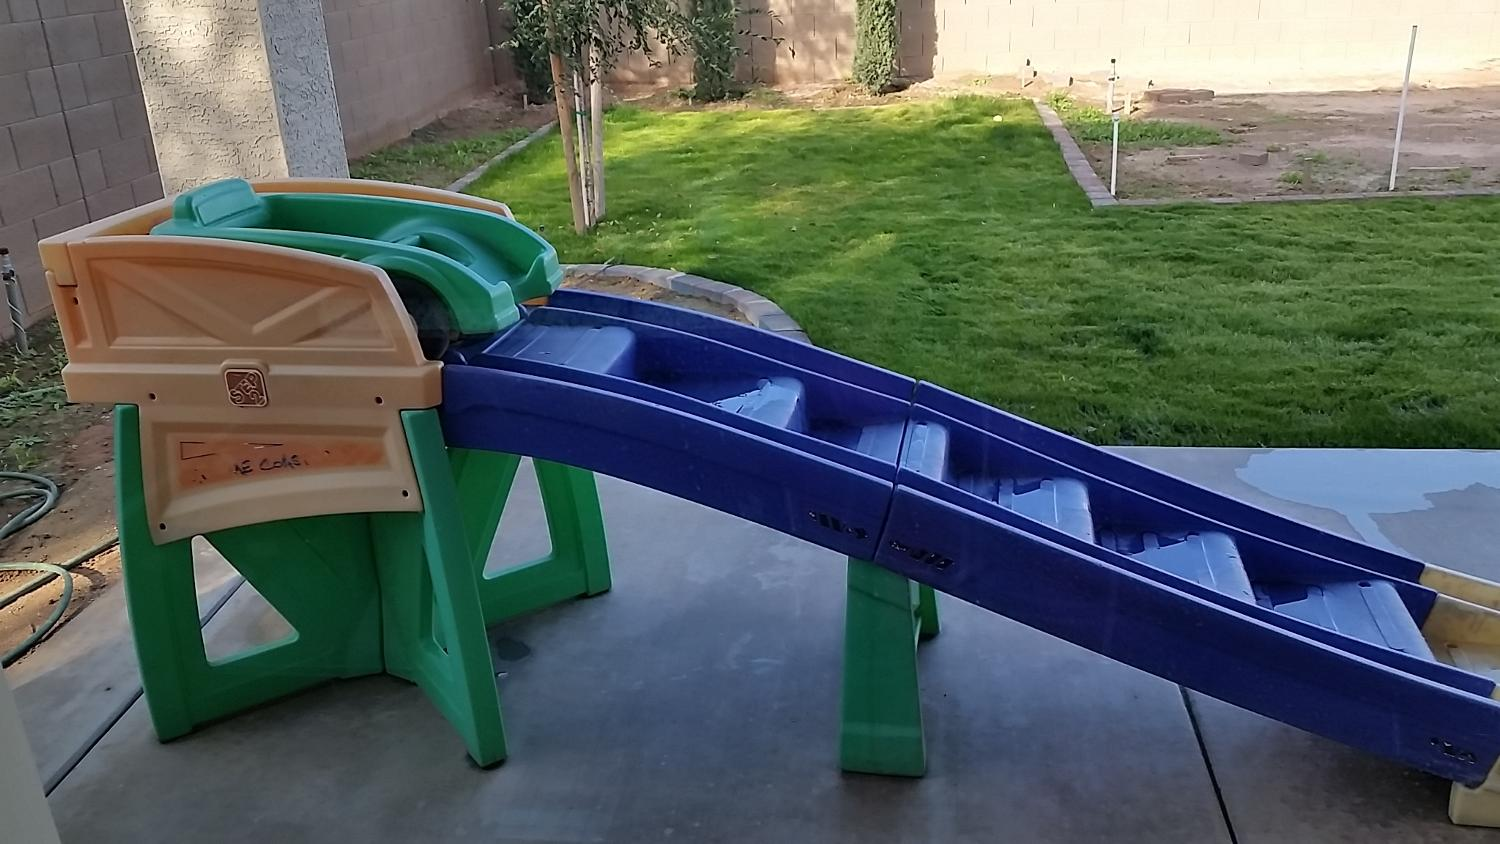 Find More Step2 Extreme Roller Coaster For Sale At Up To